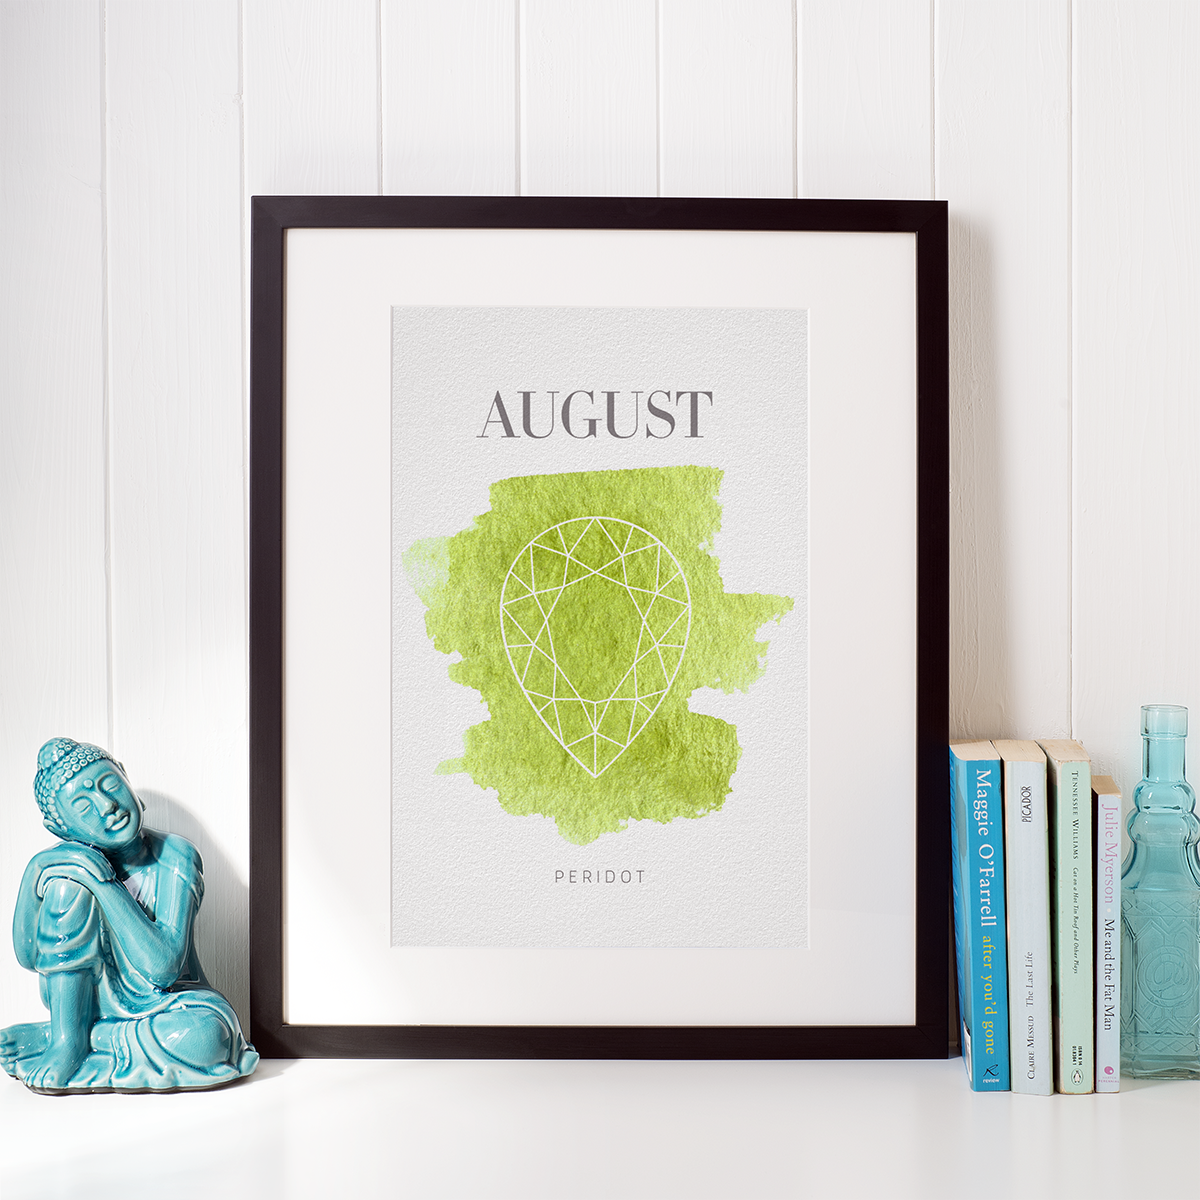 August-Peridot-Poster-styled.png